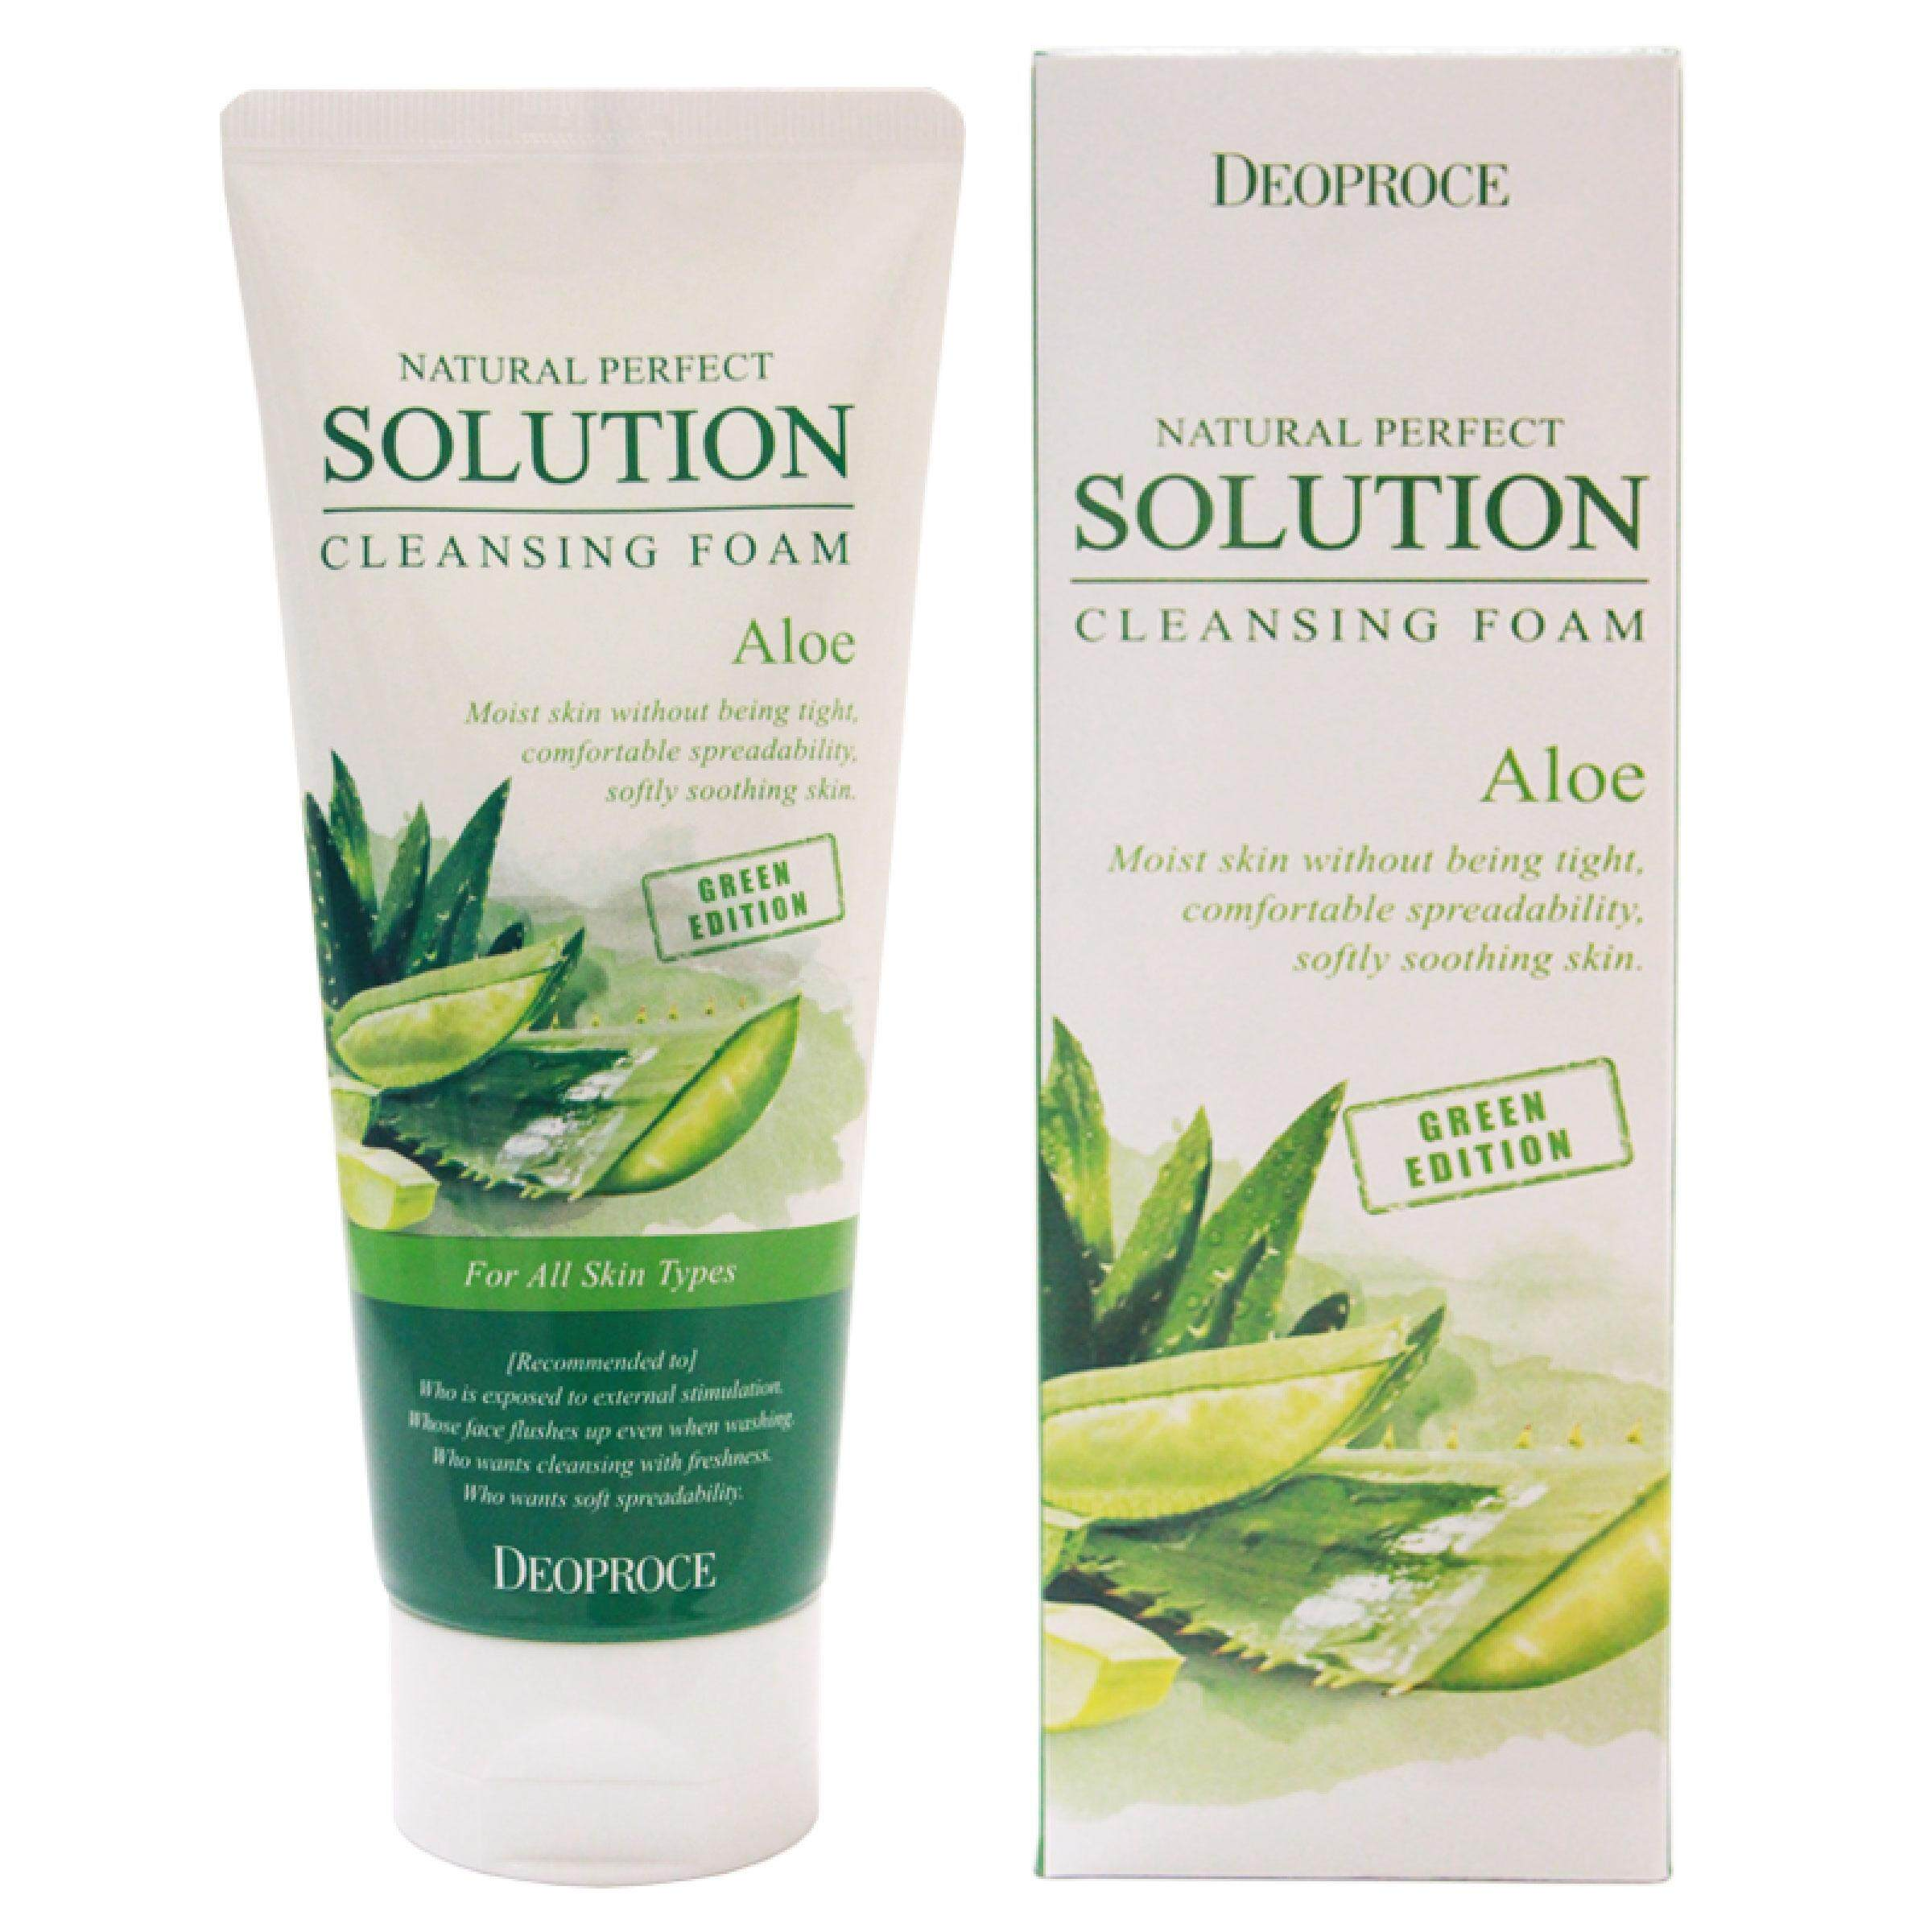 Deoproce Natural Perfect Solution Cleansing Foam Aloe 170gm